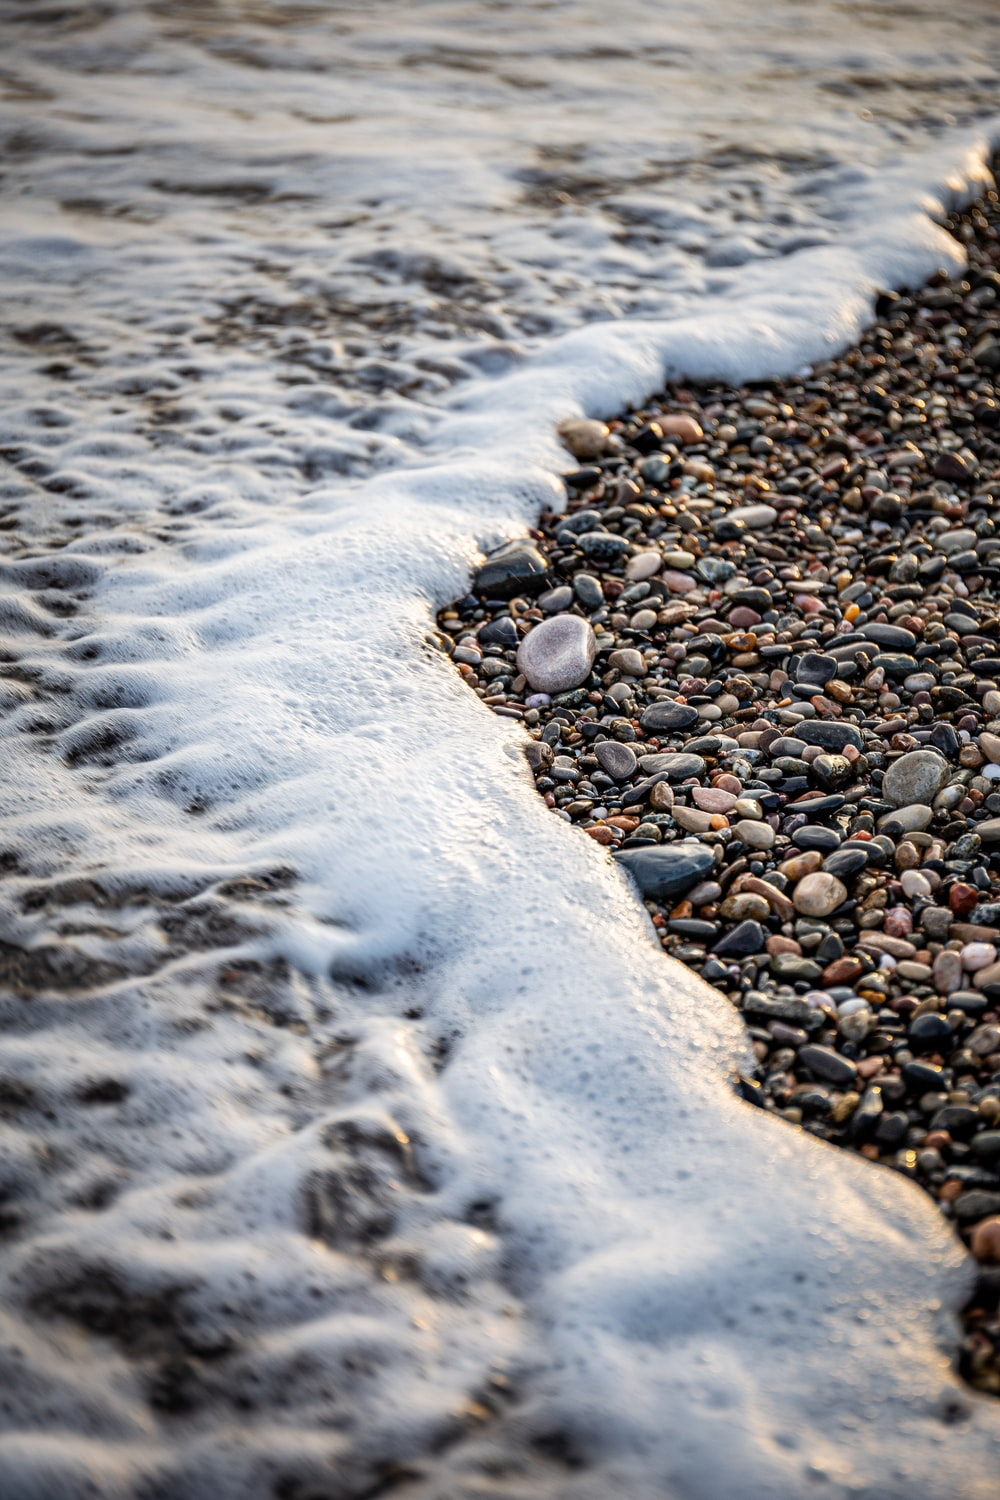 brown and black stones on seashore during daytime